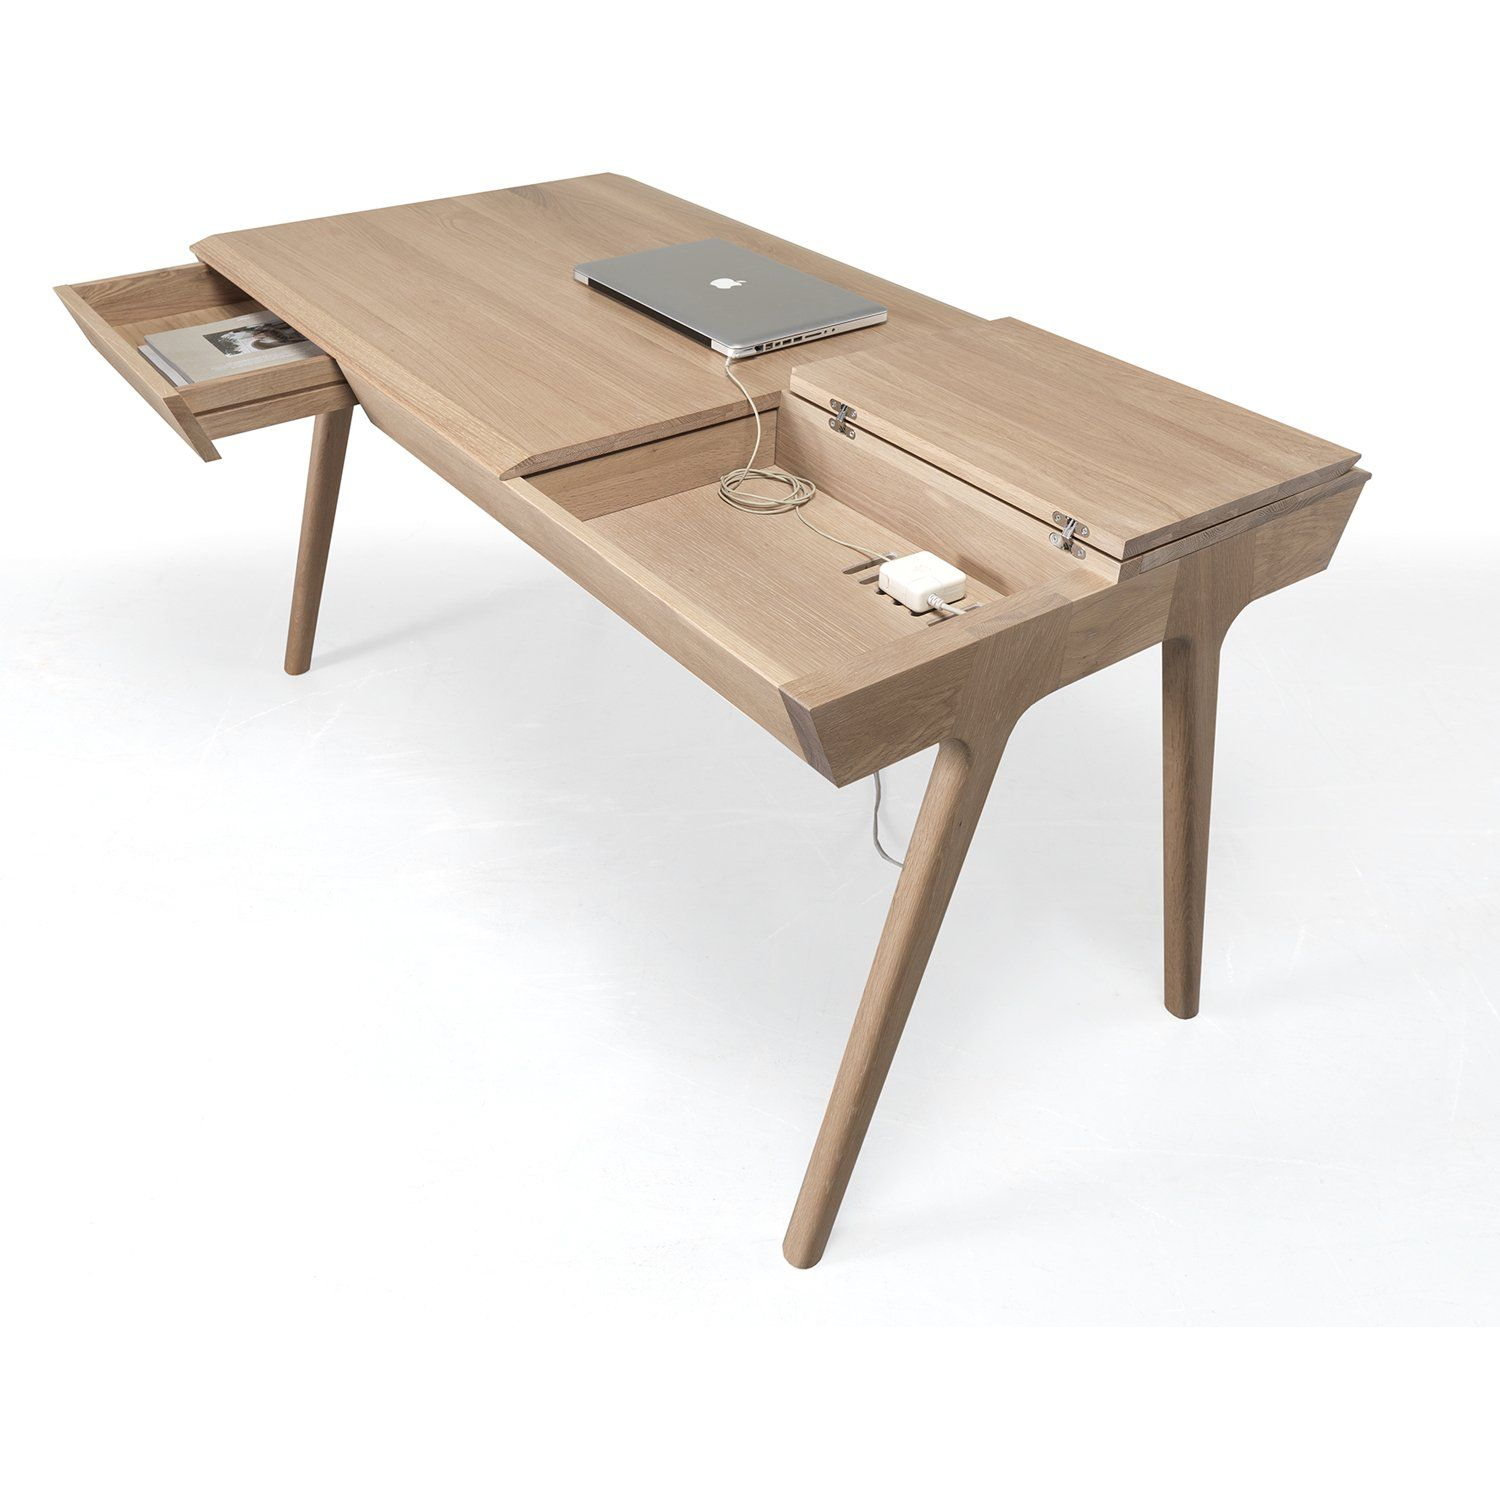 Metis Desk In 2020 Wood Desk Design Modern Wood Desk Wood